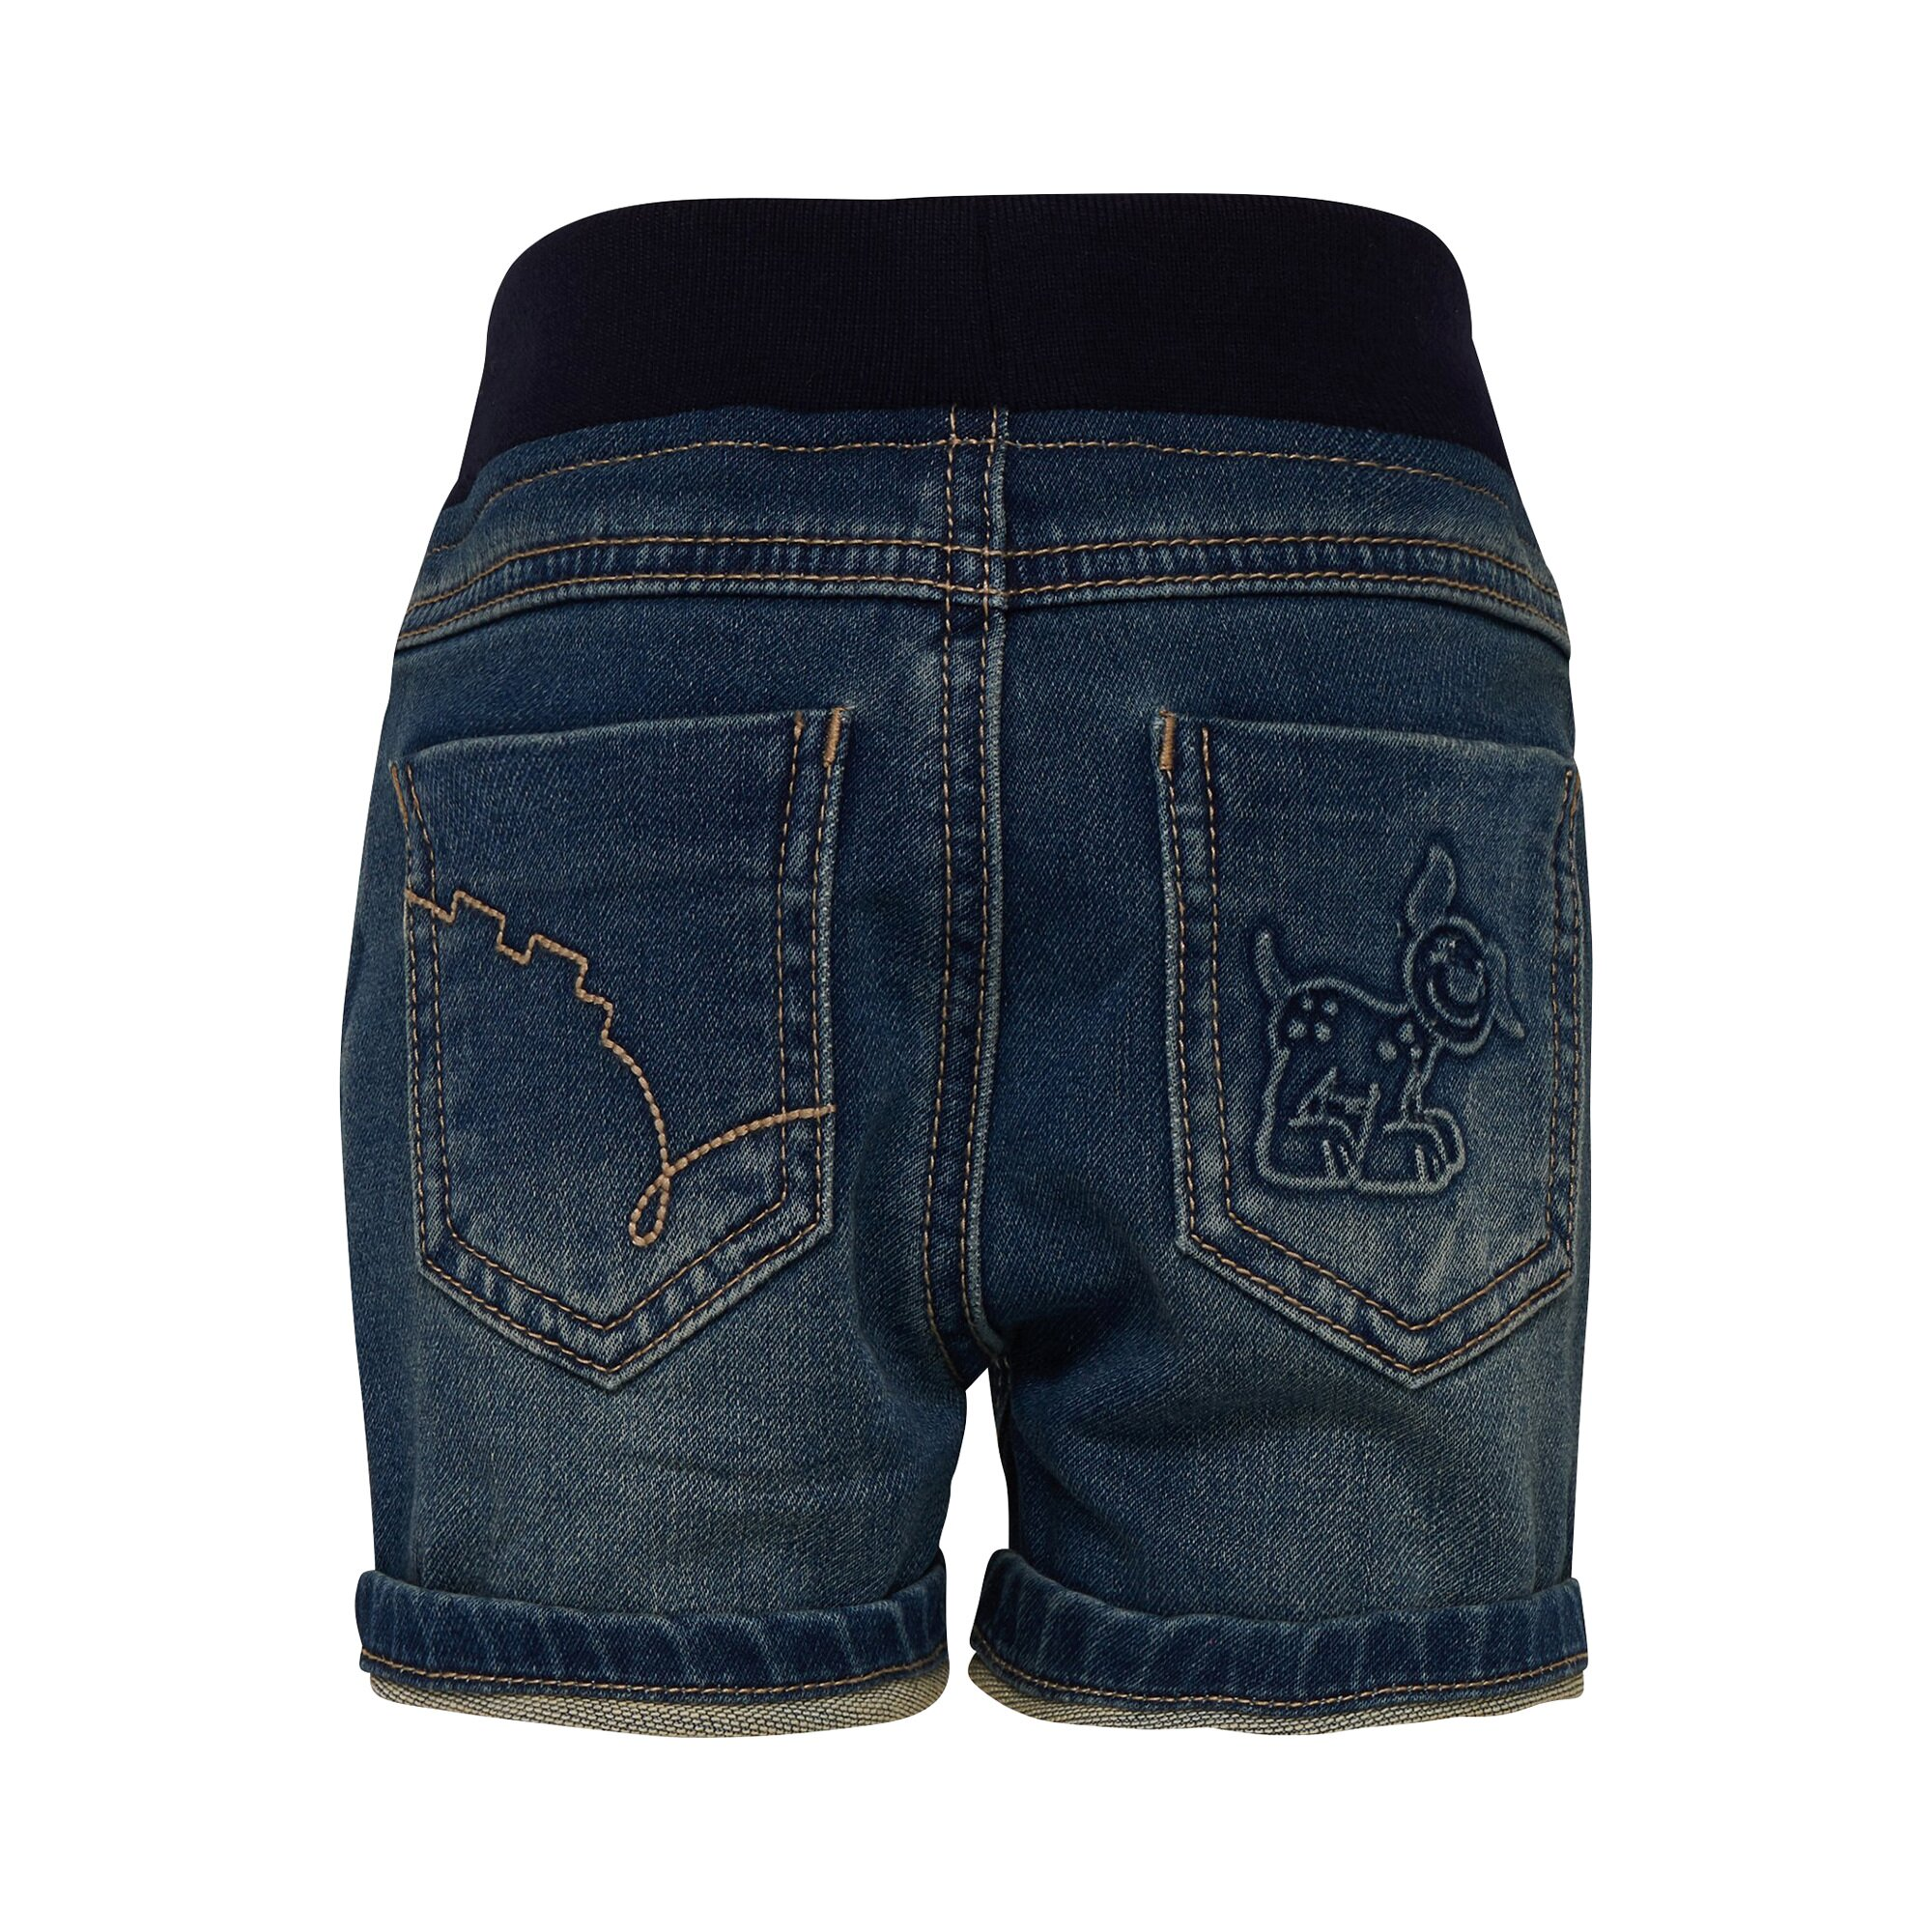 lego-wear-jeans-shorts-pan